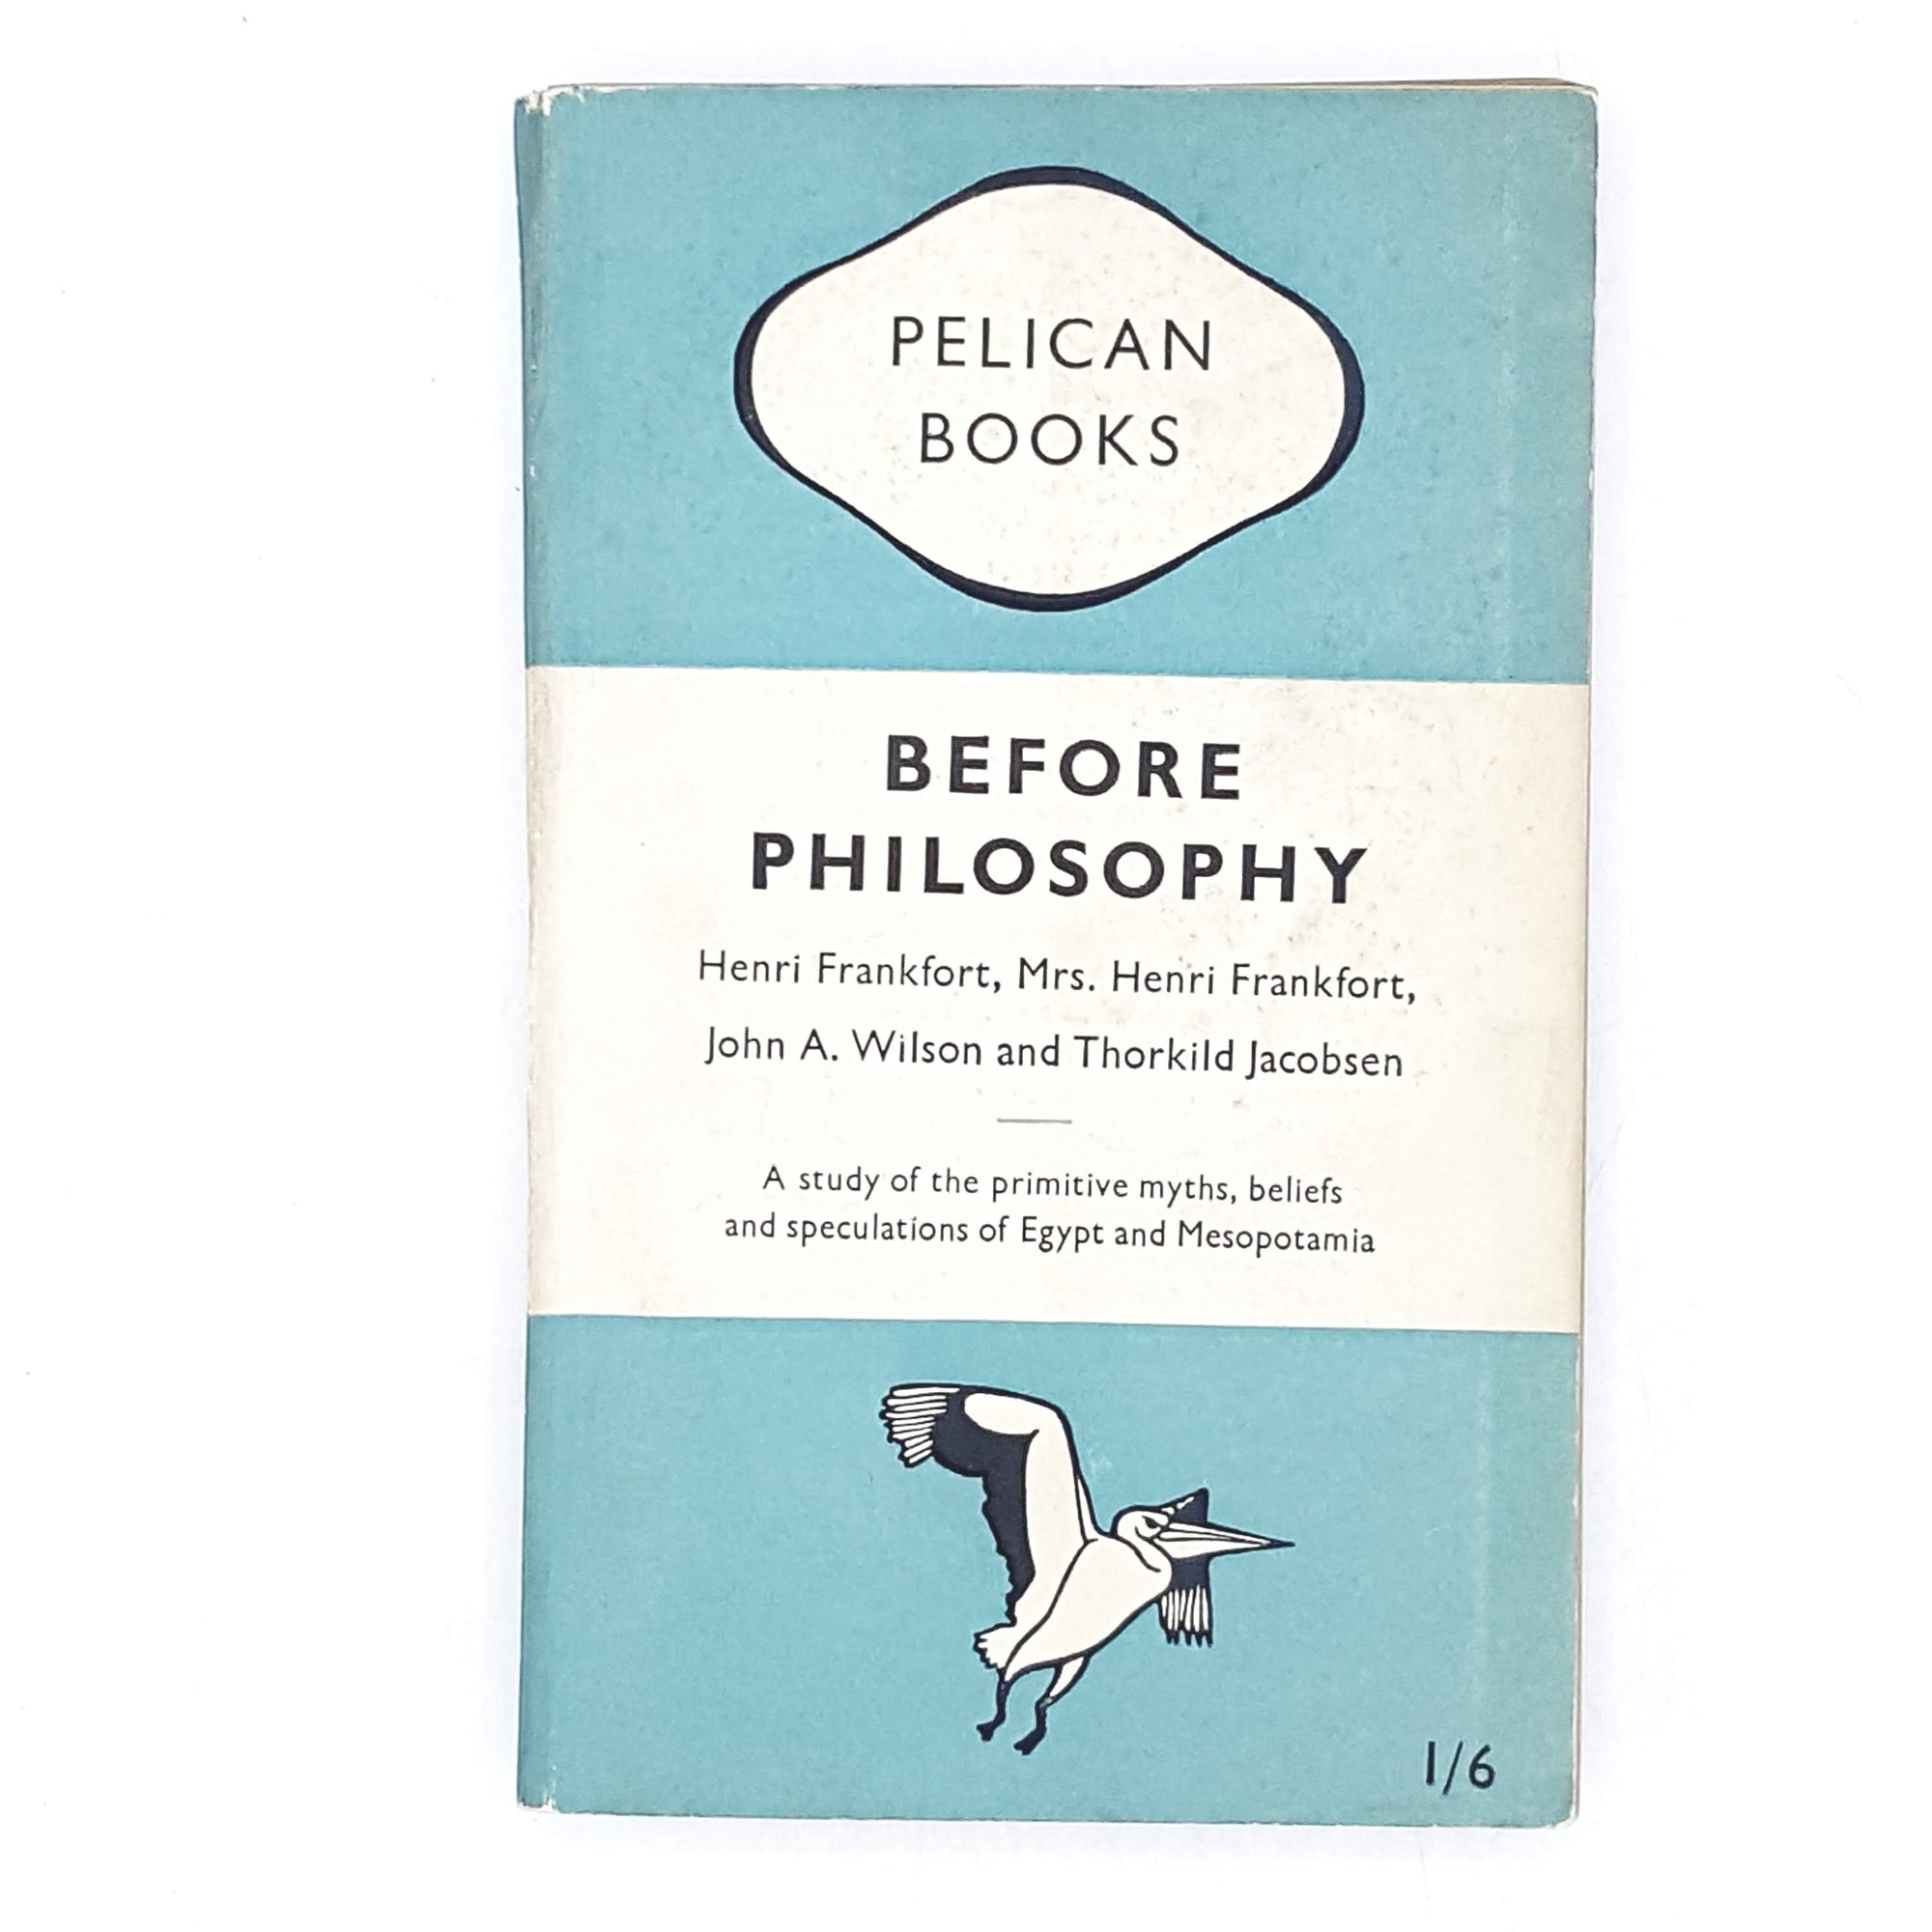 Before Philosophy by Henri Frankfort 1949